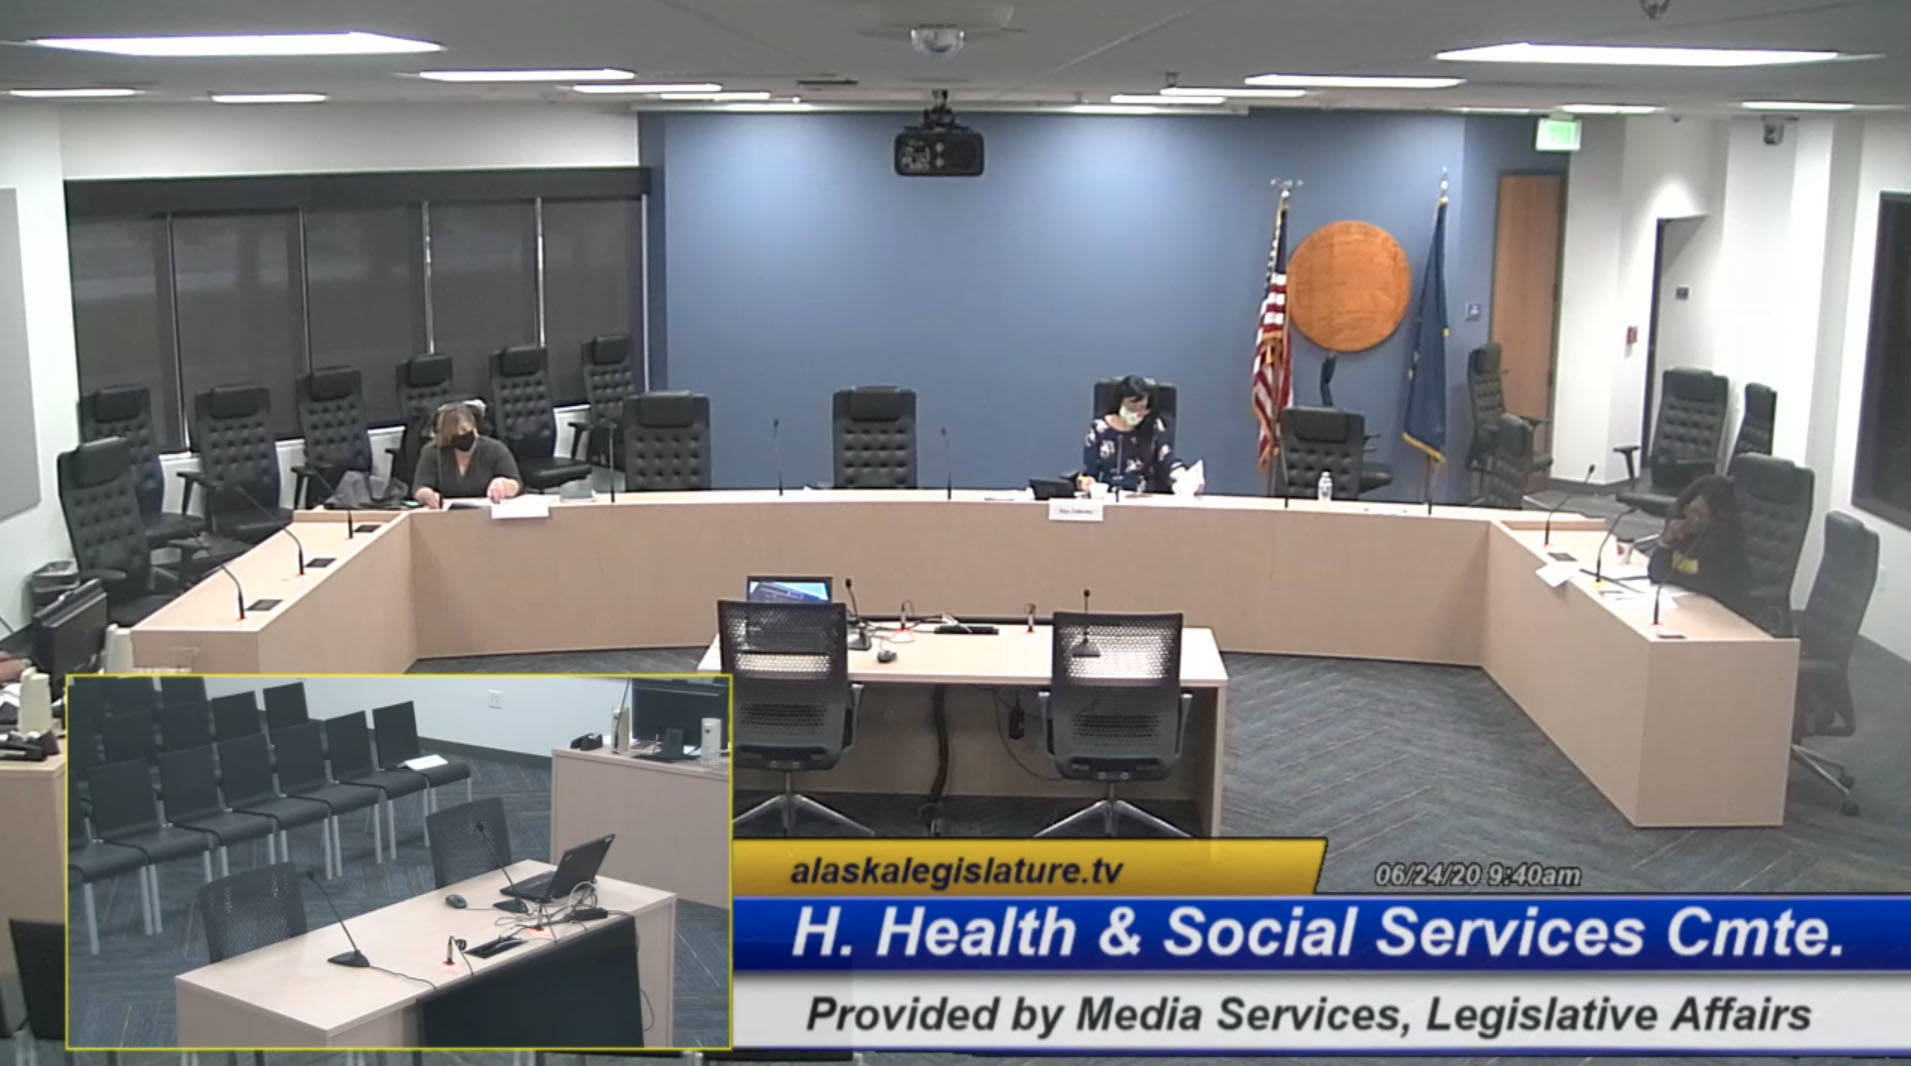 Screenshot by Brian Mazurek / Peninsula Clarion                                 From left, Rep. Geran Tarr, D- Anchorage, Rep. Tiffany Zulkosky, D-Bethel and Rep. Sharon Jackson, R- Eagle River, hold a hearing for the Alaska House Health and Social Services Committee on the State's COVID-19 response at the Anchorage Legislative Office in Anchorage on Wednesday.